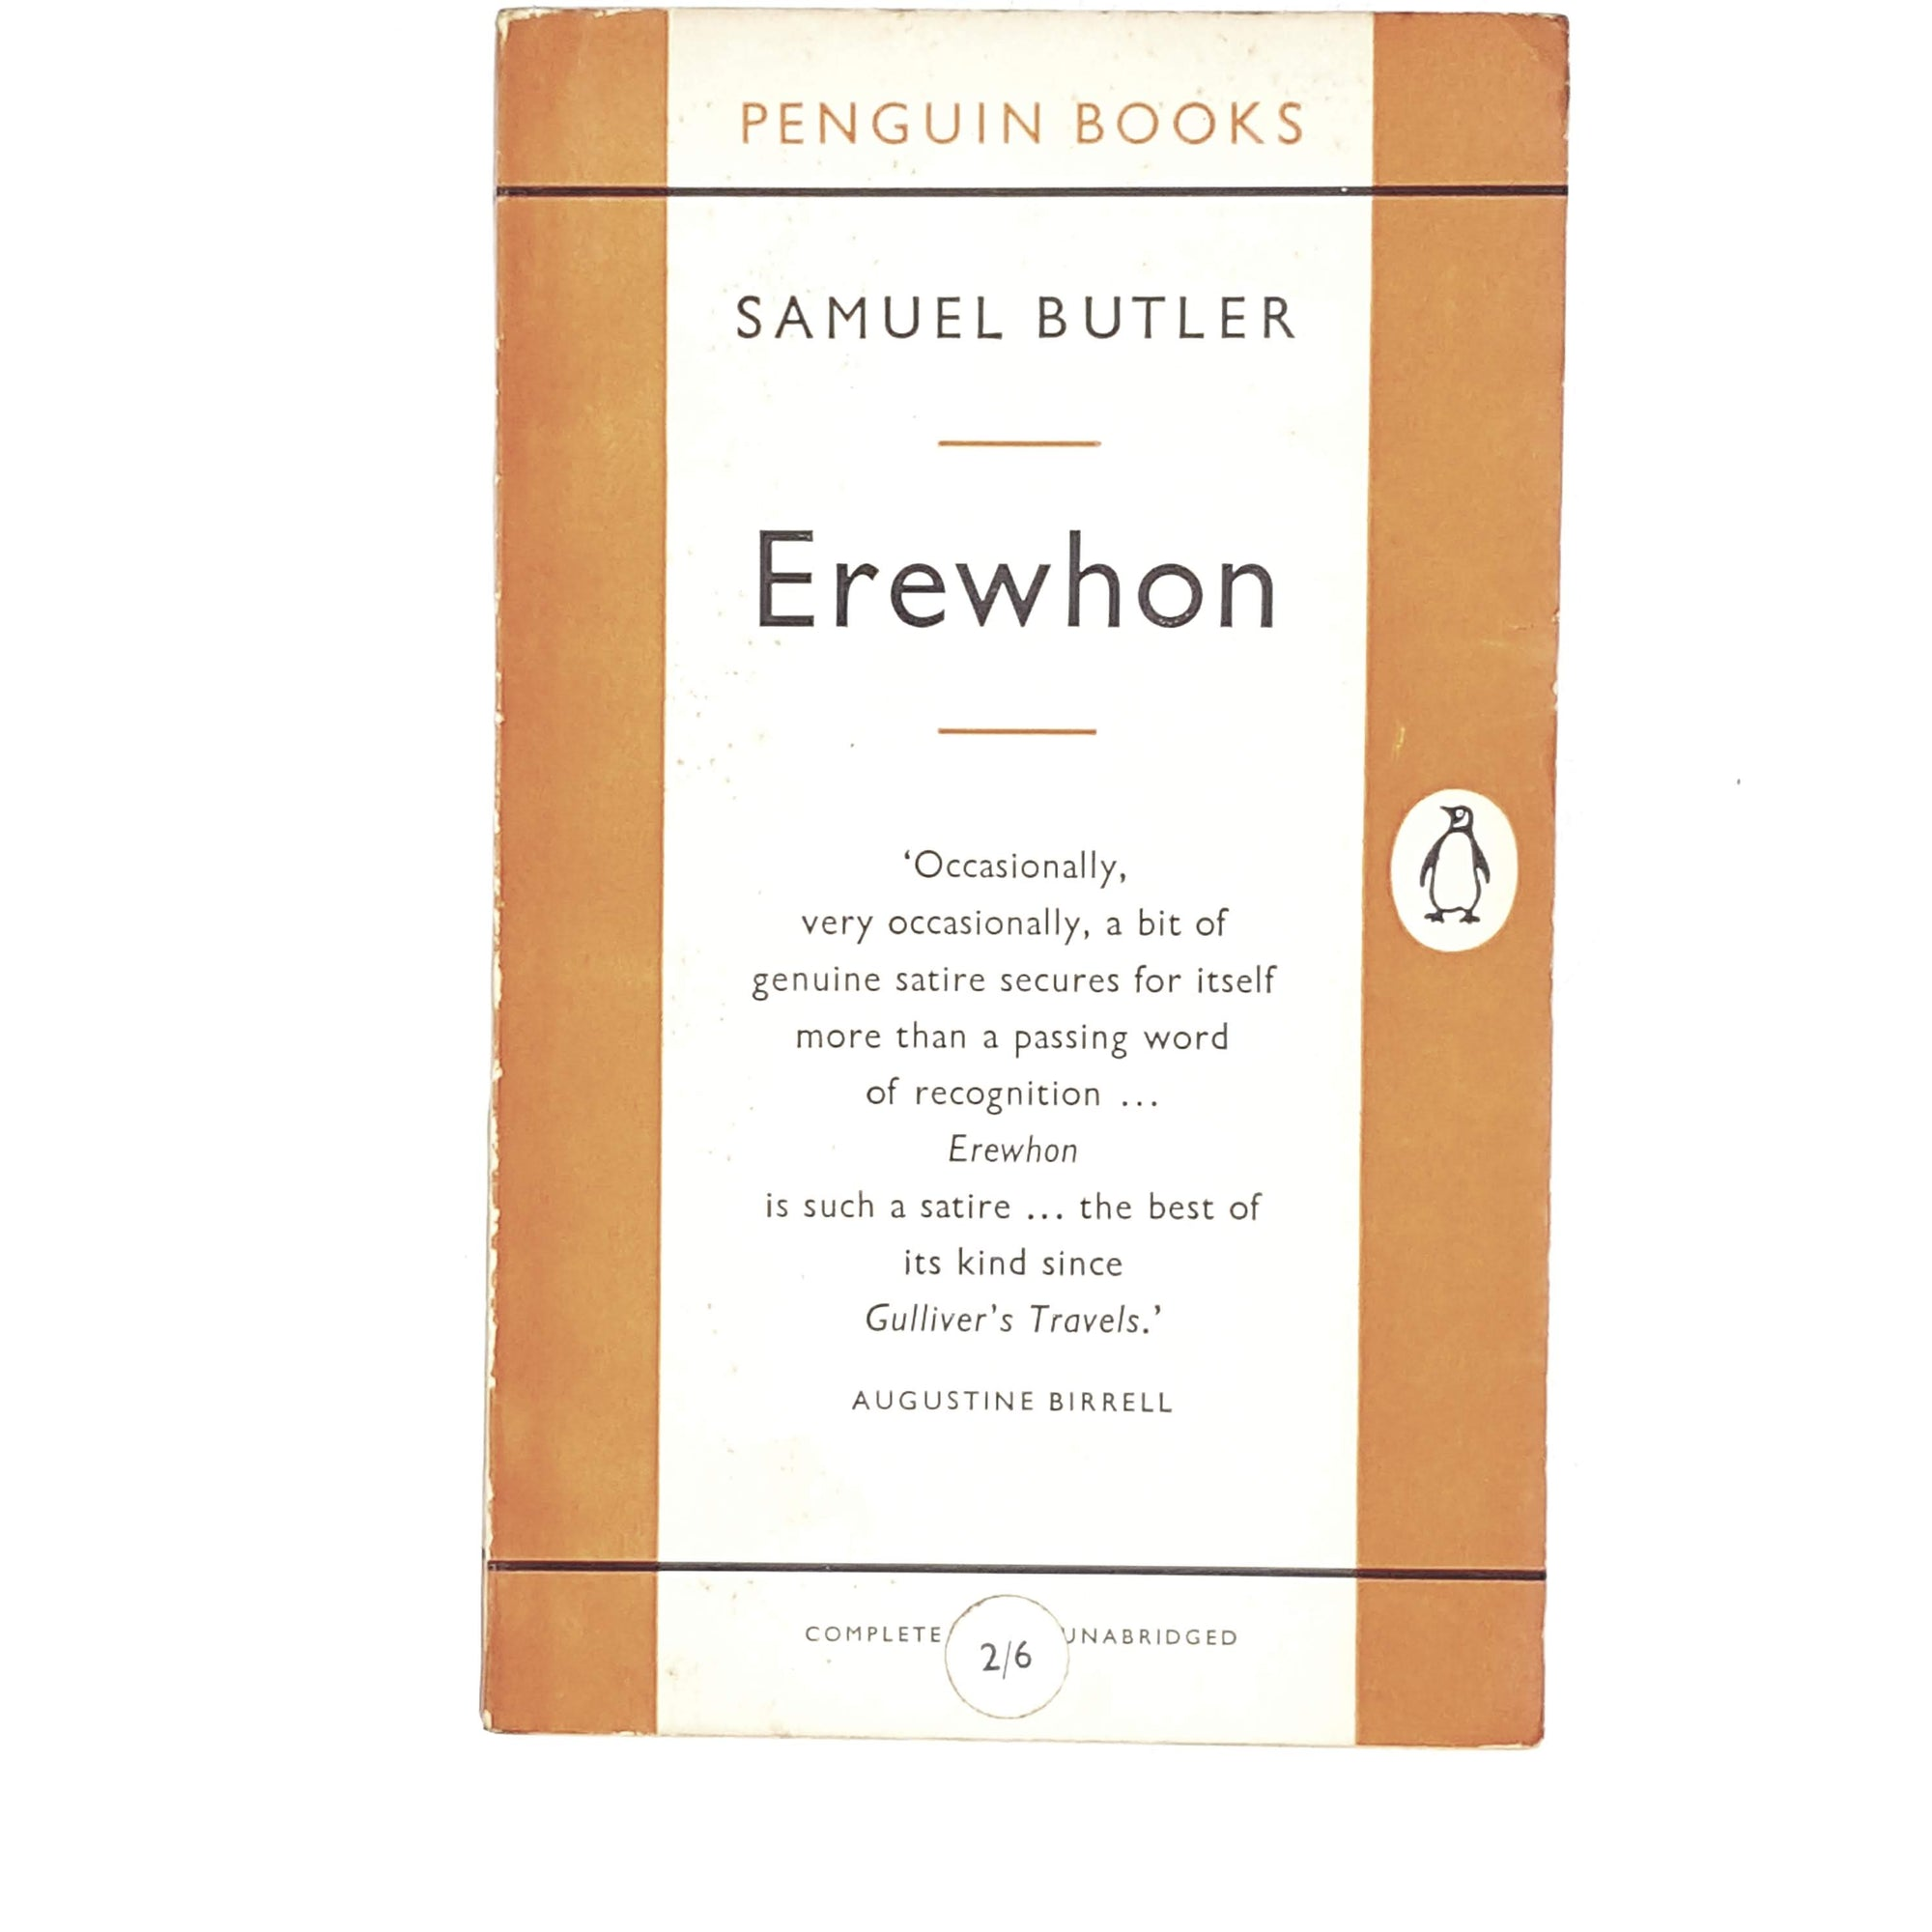 vintage-penguin-erewhon-by-samuel-butler-1954-country-house-library